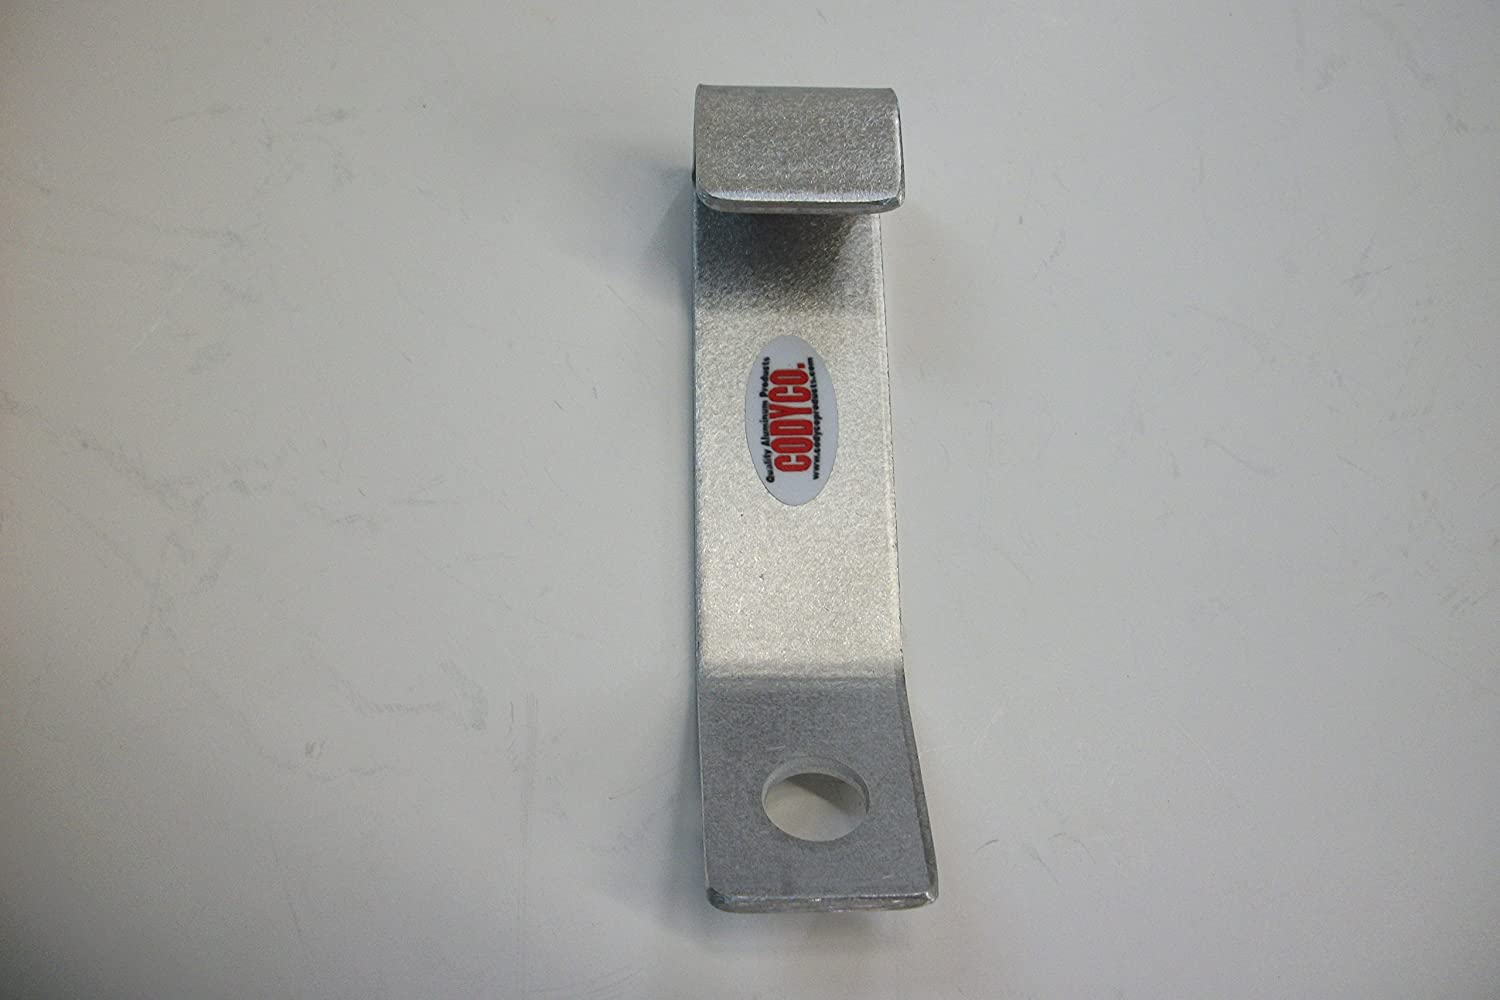 CODYCO ALUMINUM SECURITY OVERBEND LOCK BRACKET MADE TO FIT RTIC 45 /& 65 COOLER